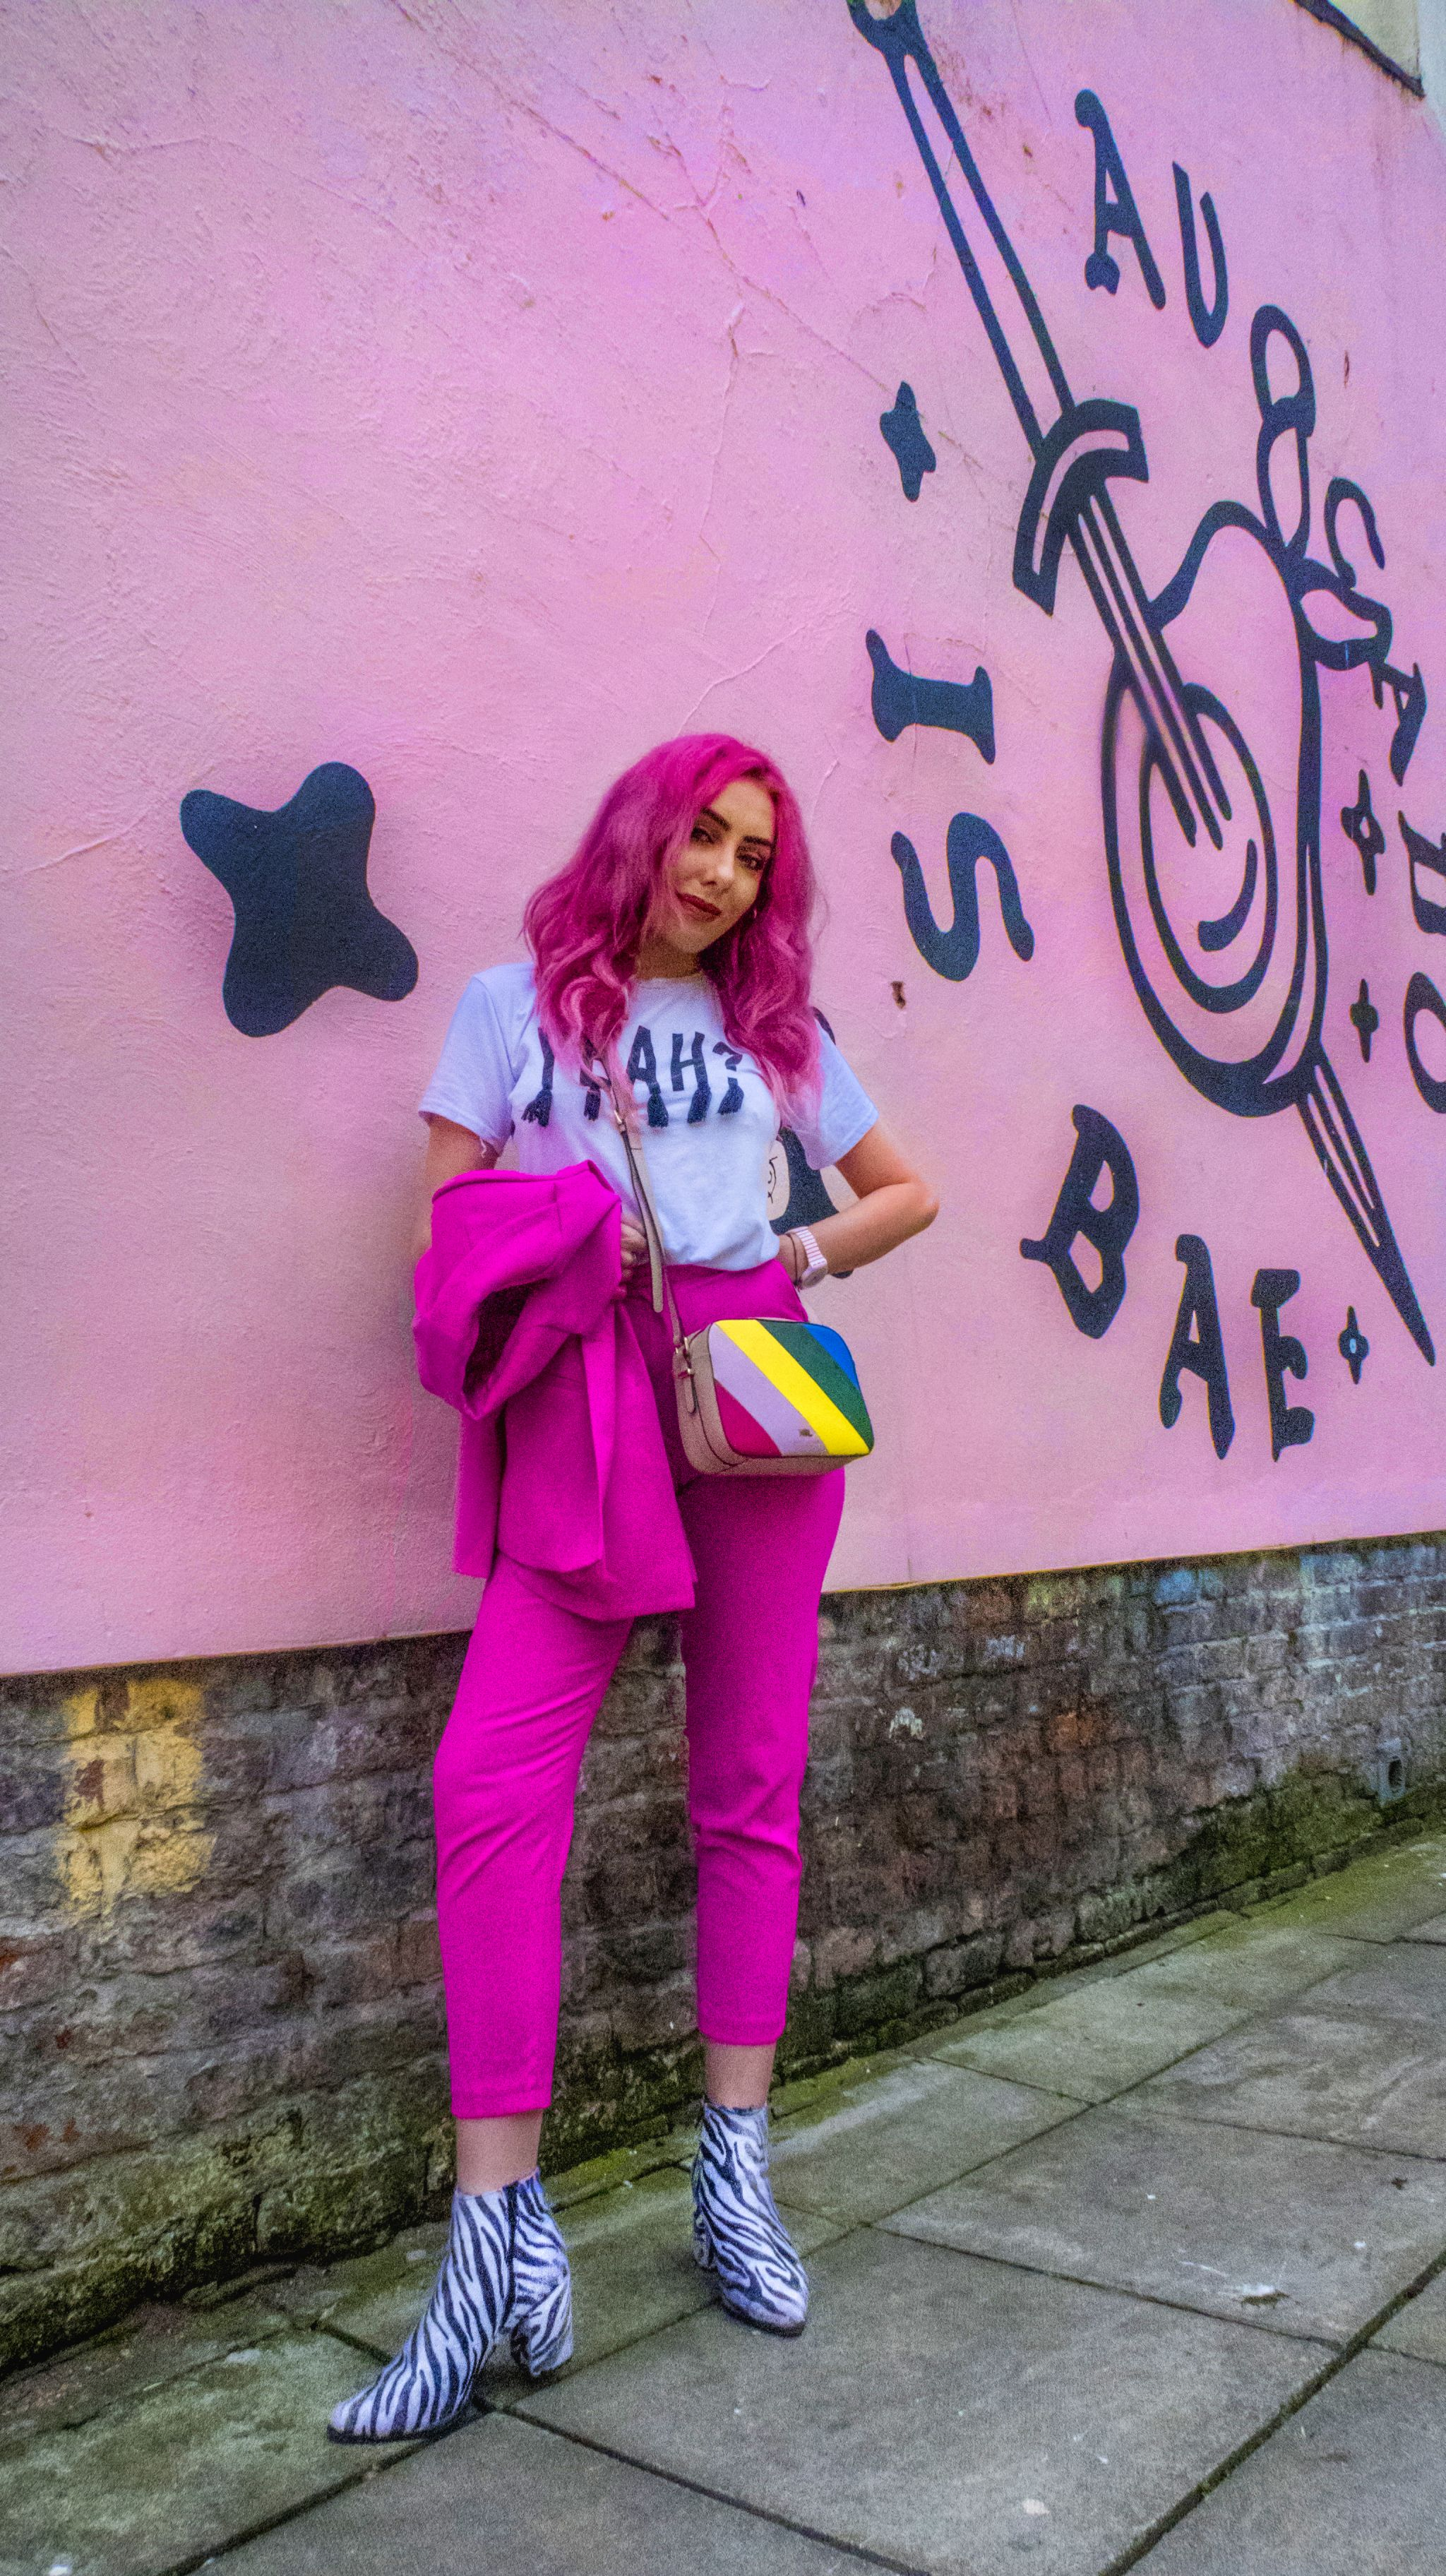 Liverpool Fashion Blogger Stephi LaReine in pink suit from Metquarter